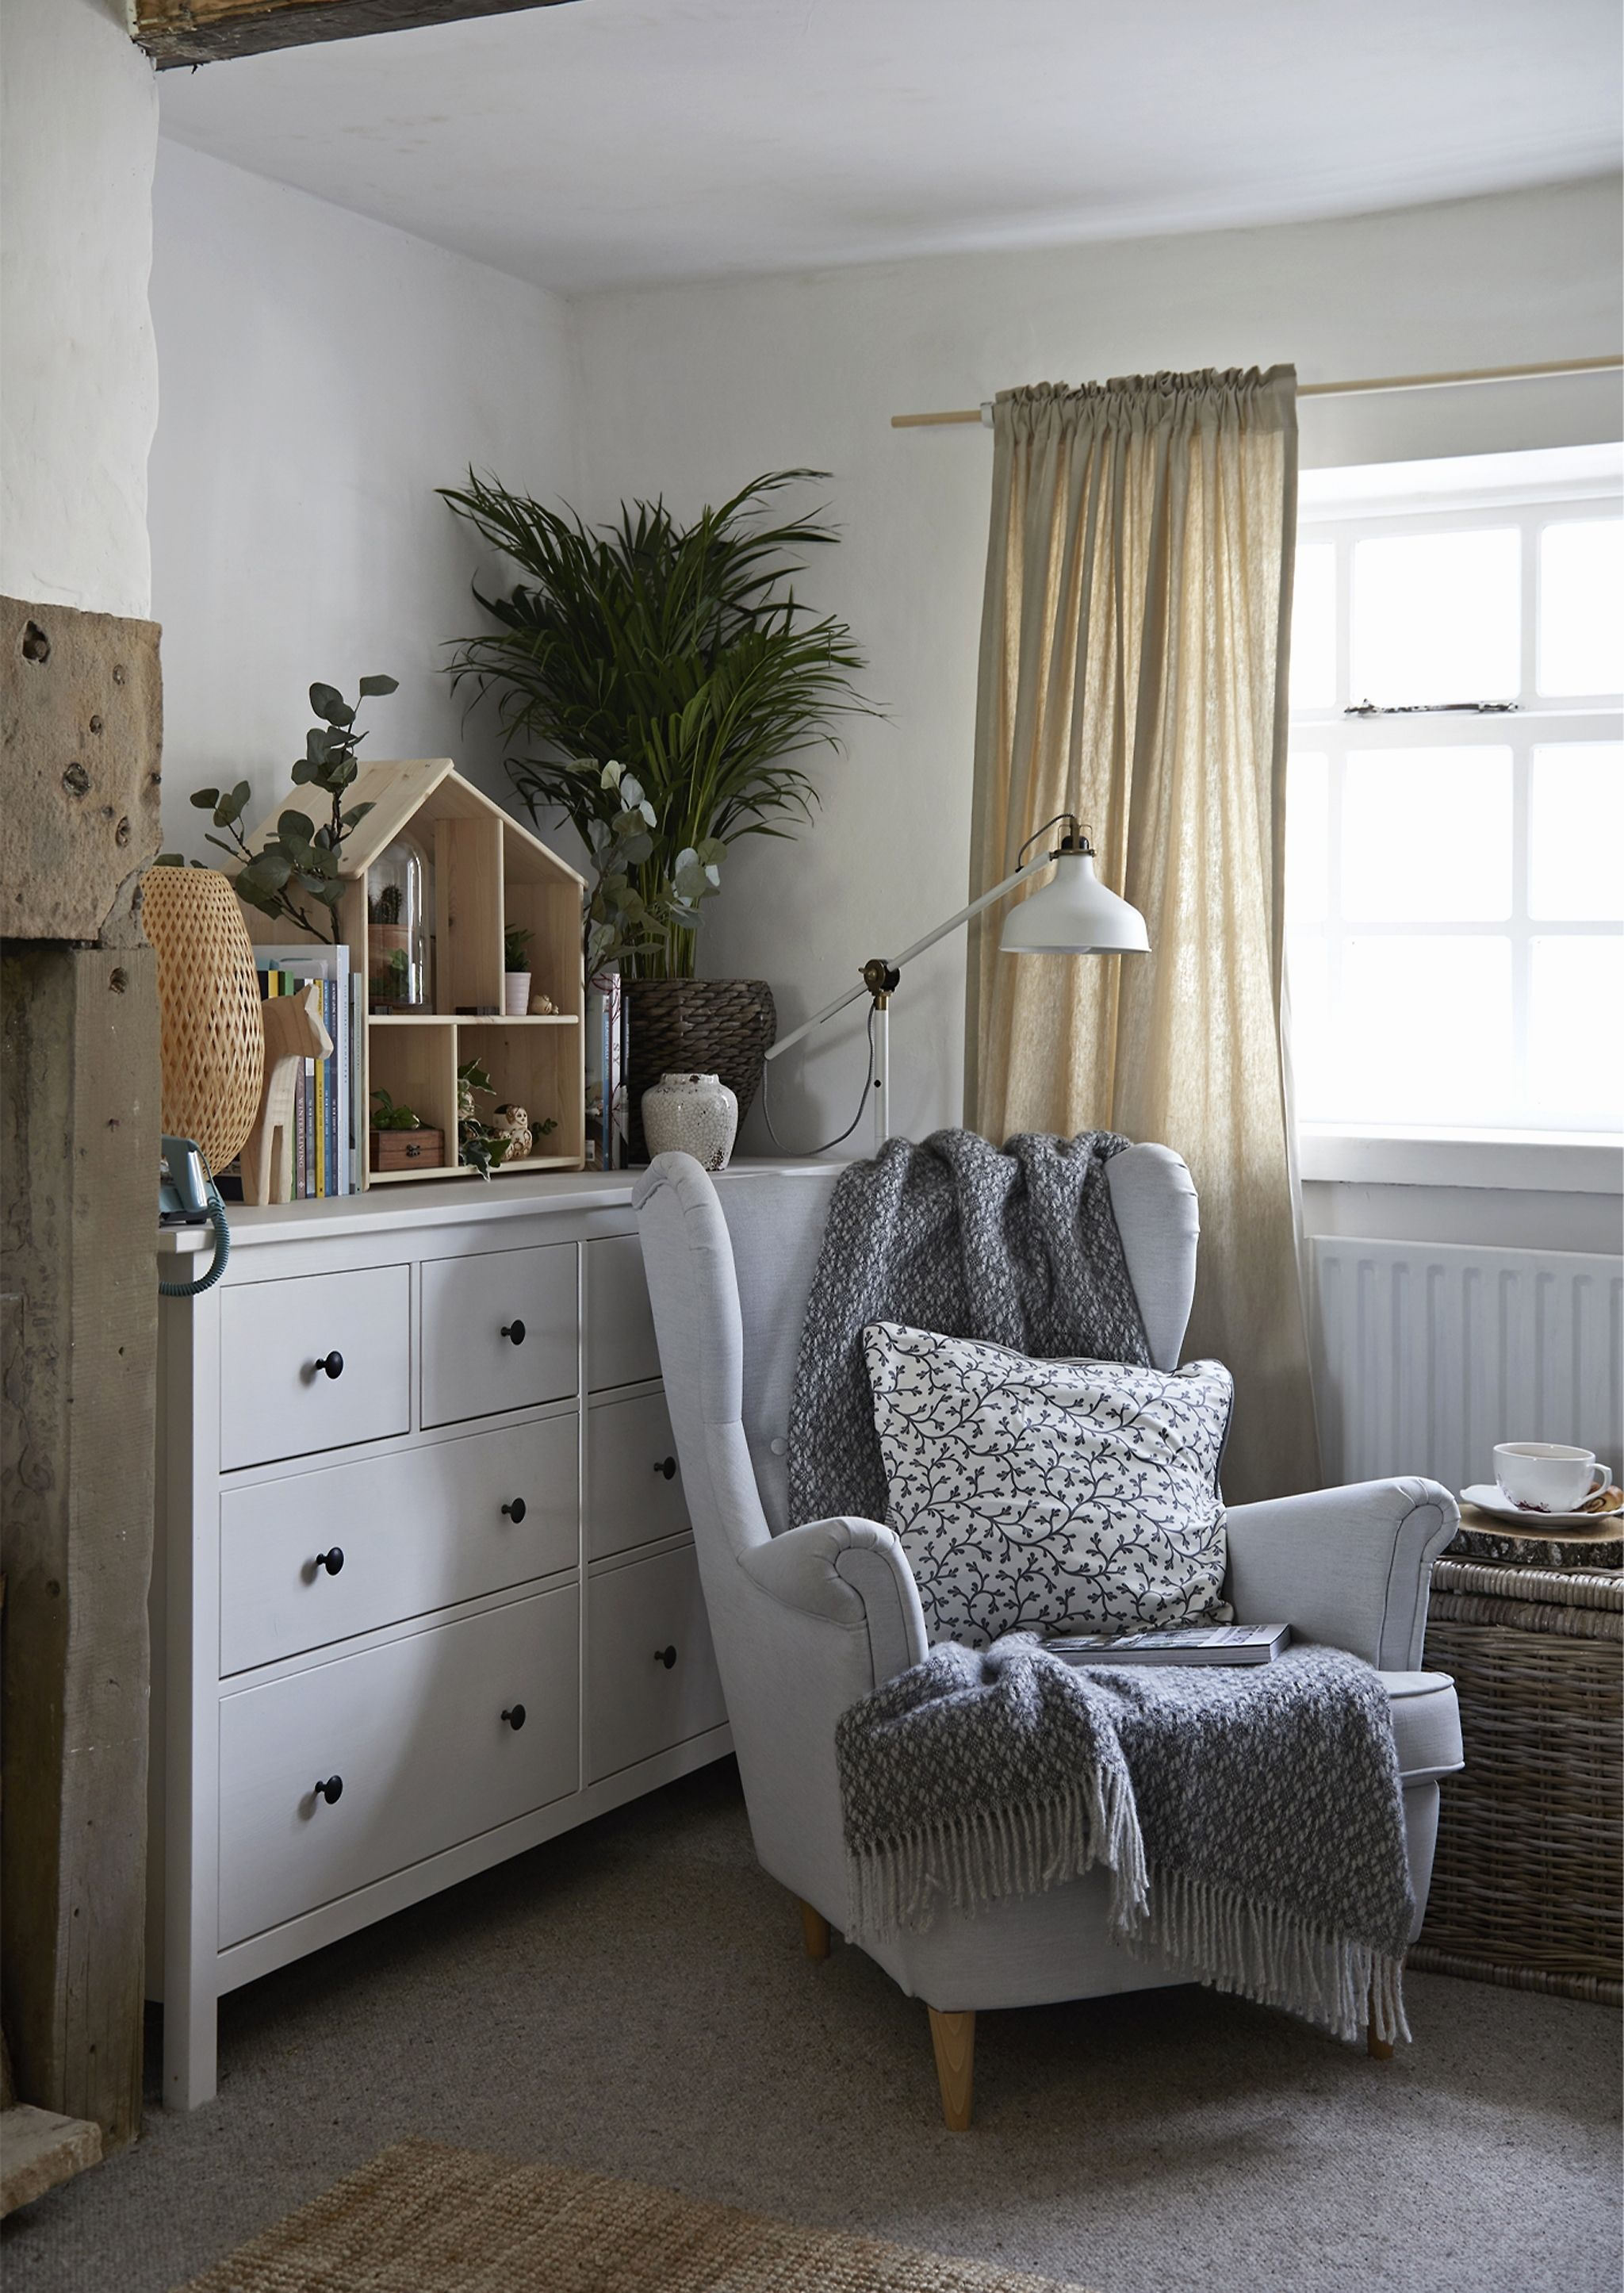 Living Room Design Ikea: 10 Items In The IKEA Kids Section You'll Want For Yourself